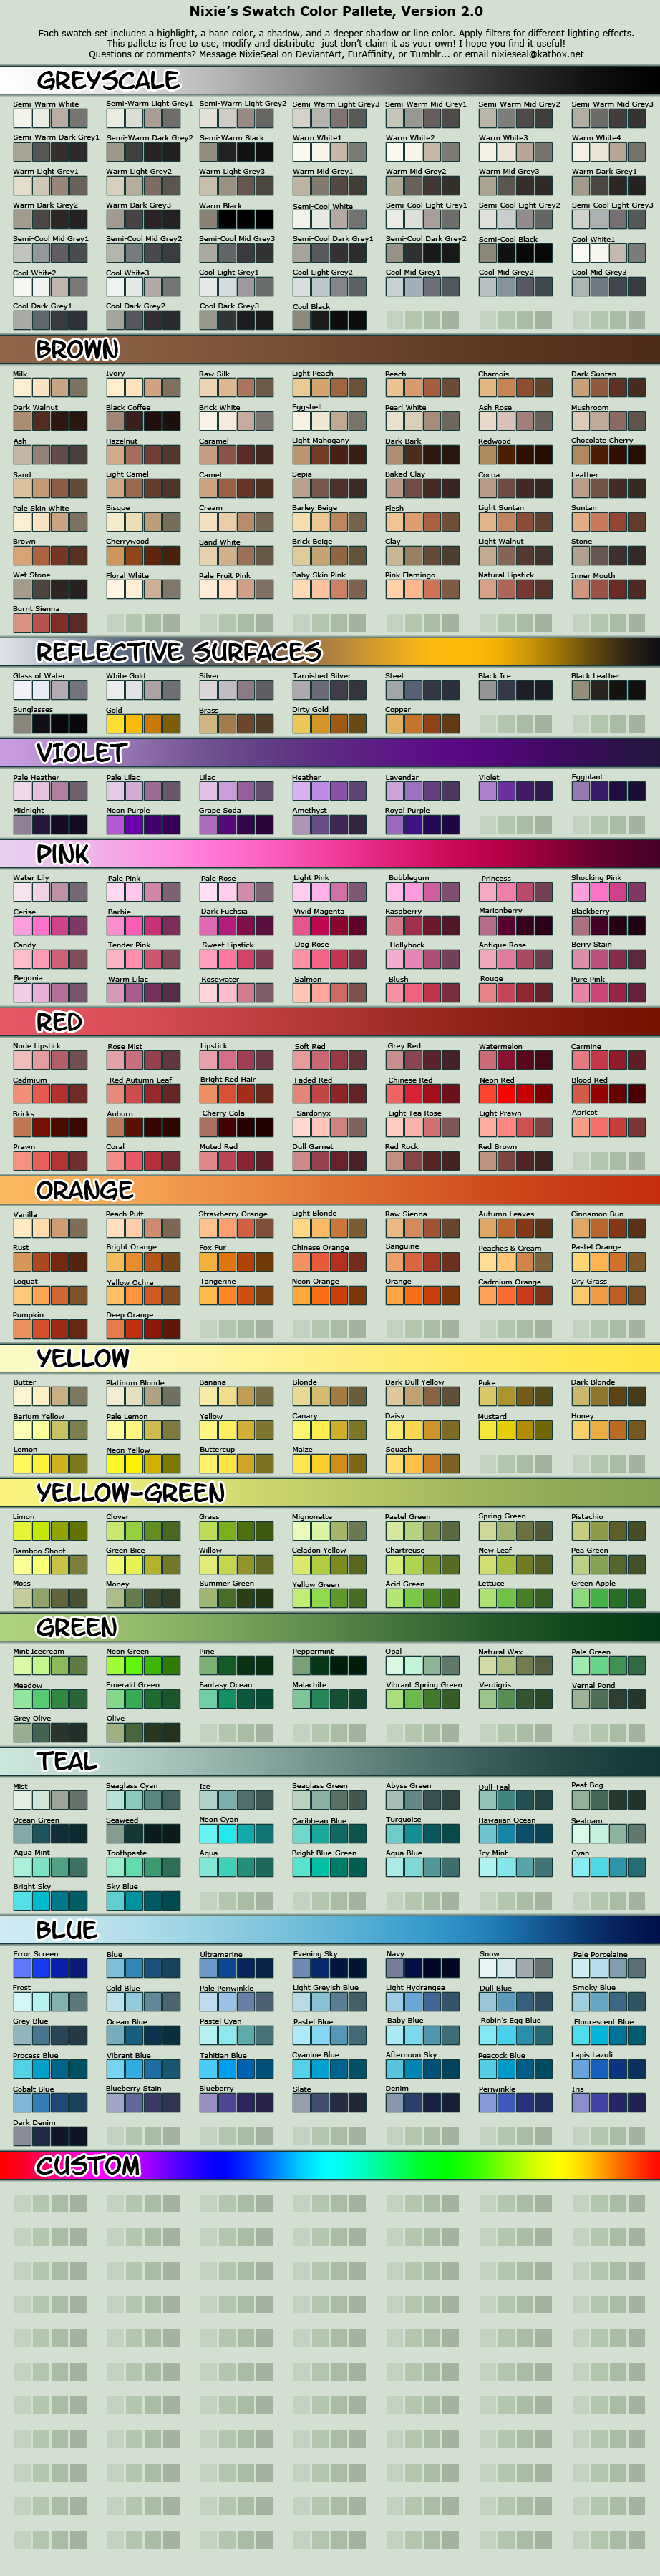 This is an illustration of all the different types of colors to be this is an illustration of all the different types of colors to be used in an imagetpinkfumesspot201110poster designs color des nvjuhfo Choice Image